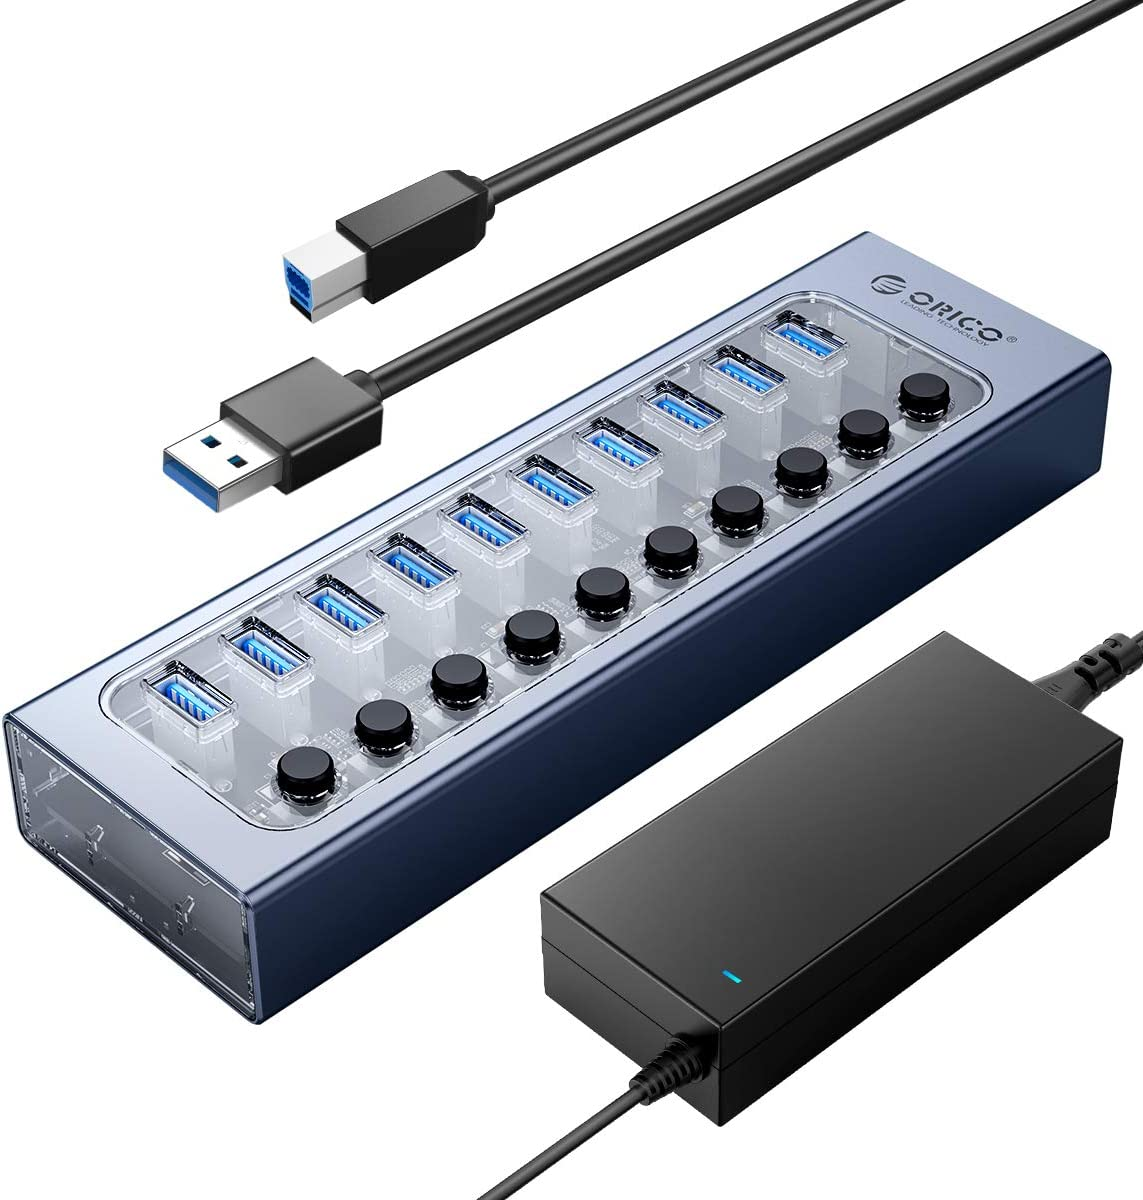 ORICO USB Hub 3.0 Powered 10 Ports USB Data Hub with 12V4A Power Adapter, Individual Power Switches, and LEDs, USB Extension for iMac Pro, MacBook Air/Mini, PS4, Surface Pro, Notebook PC, Laptop, HDD